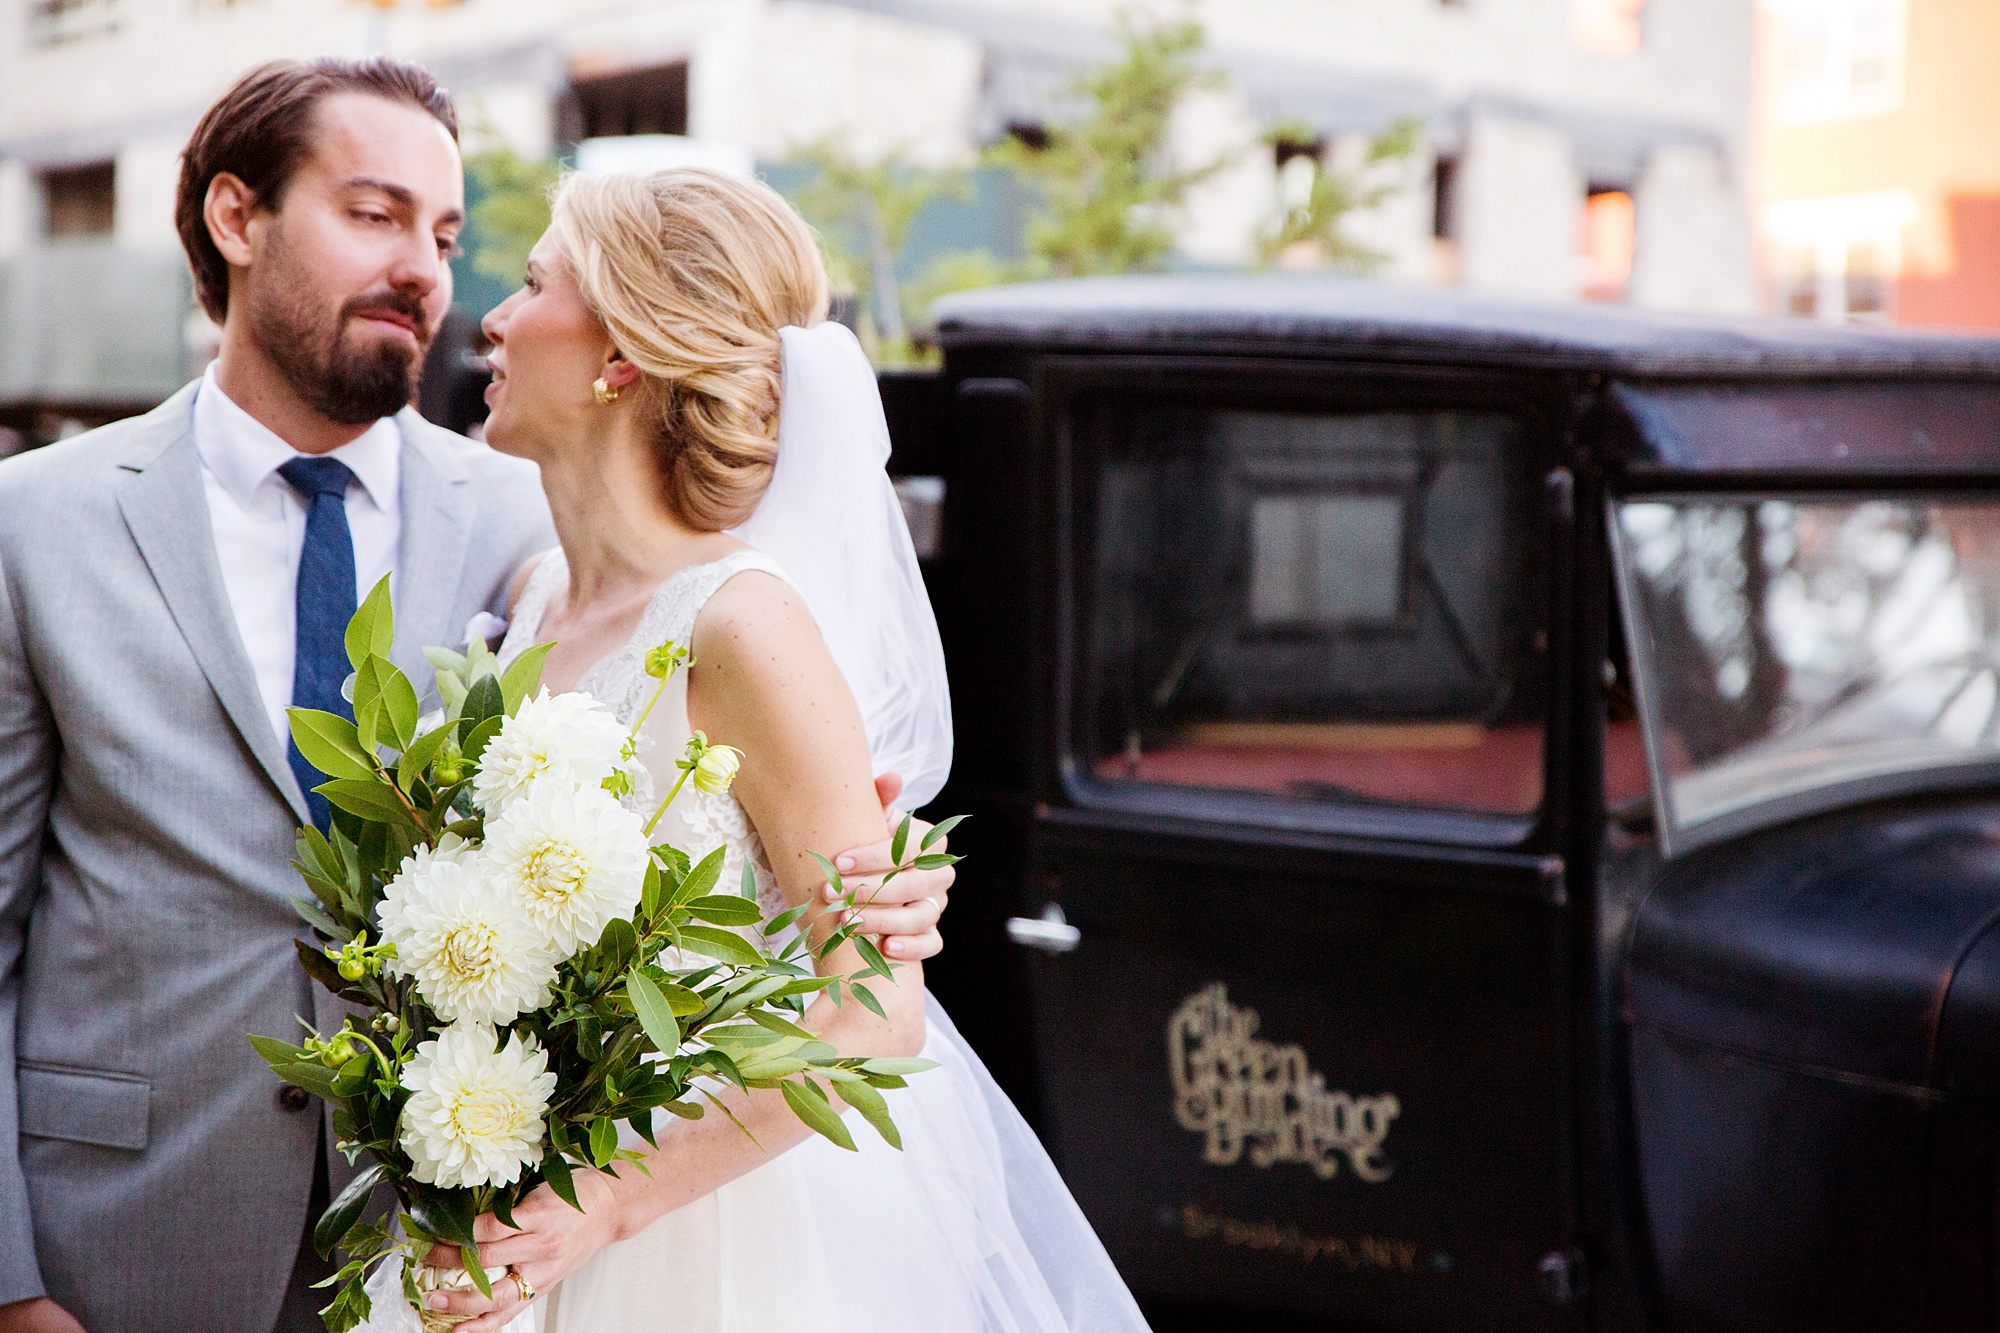 Groom with his arm around bride holding a large bouquet of with white flowers and greenery with The Green Building vintage black truck in the background in a photo by Kyo Morishima